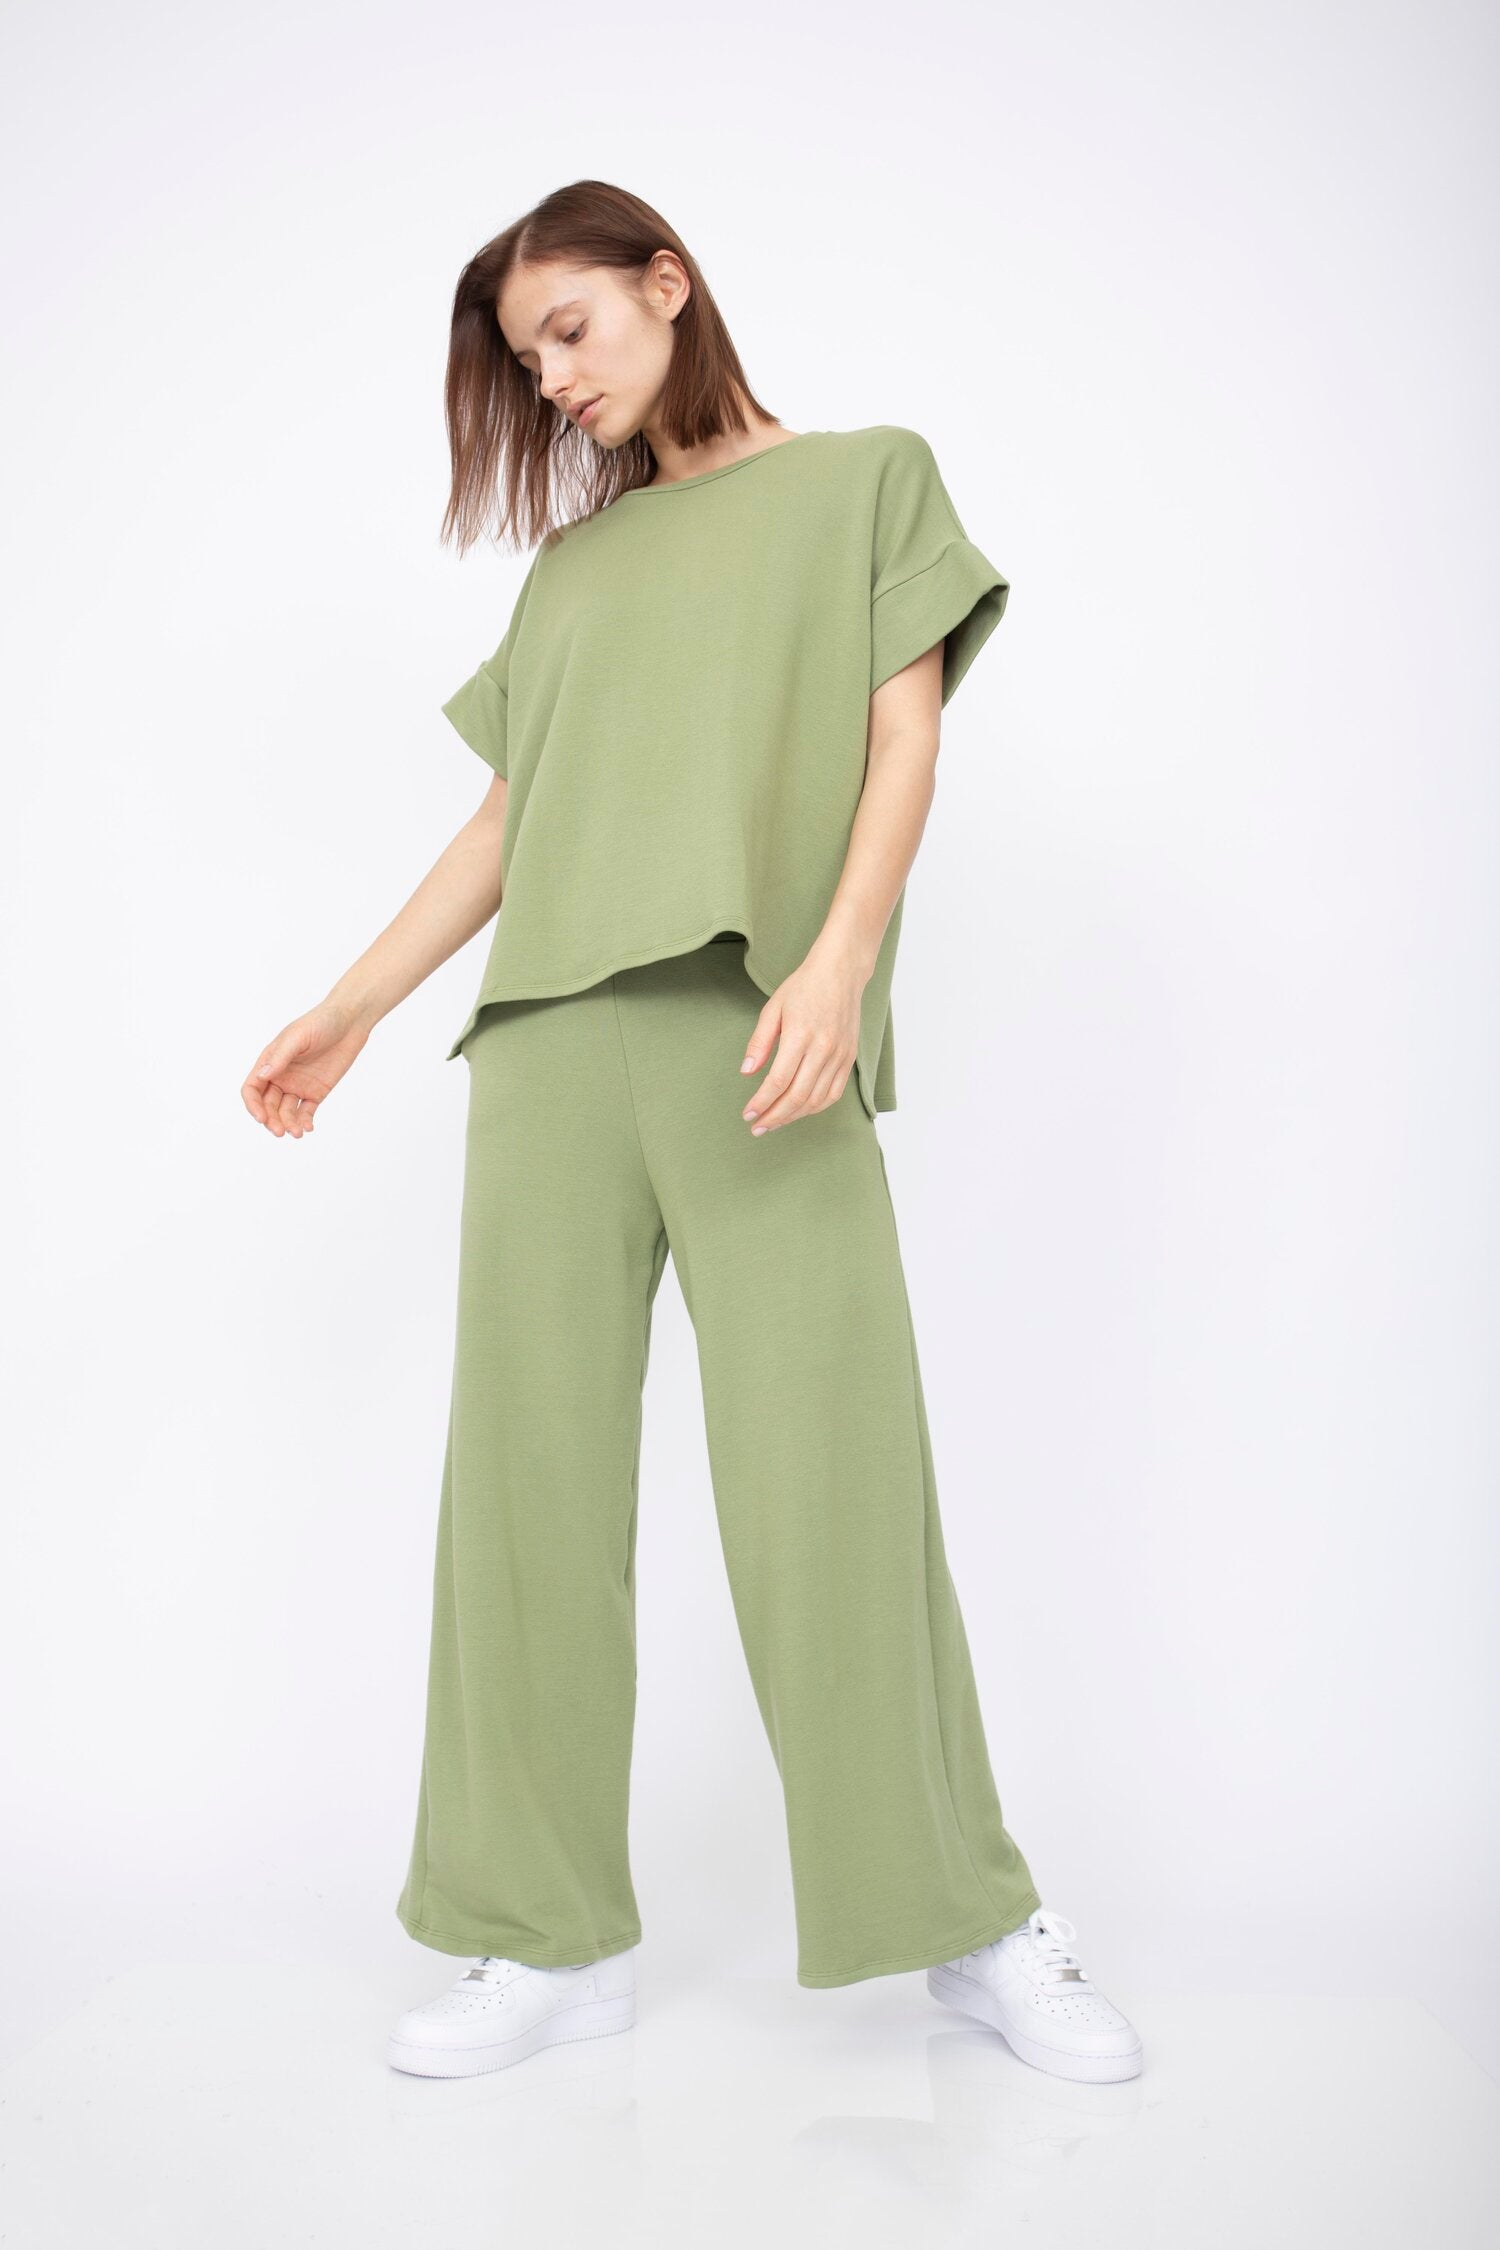 Corinne Collection - Gavin Tunic with Side Slits (Basil)